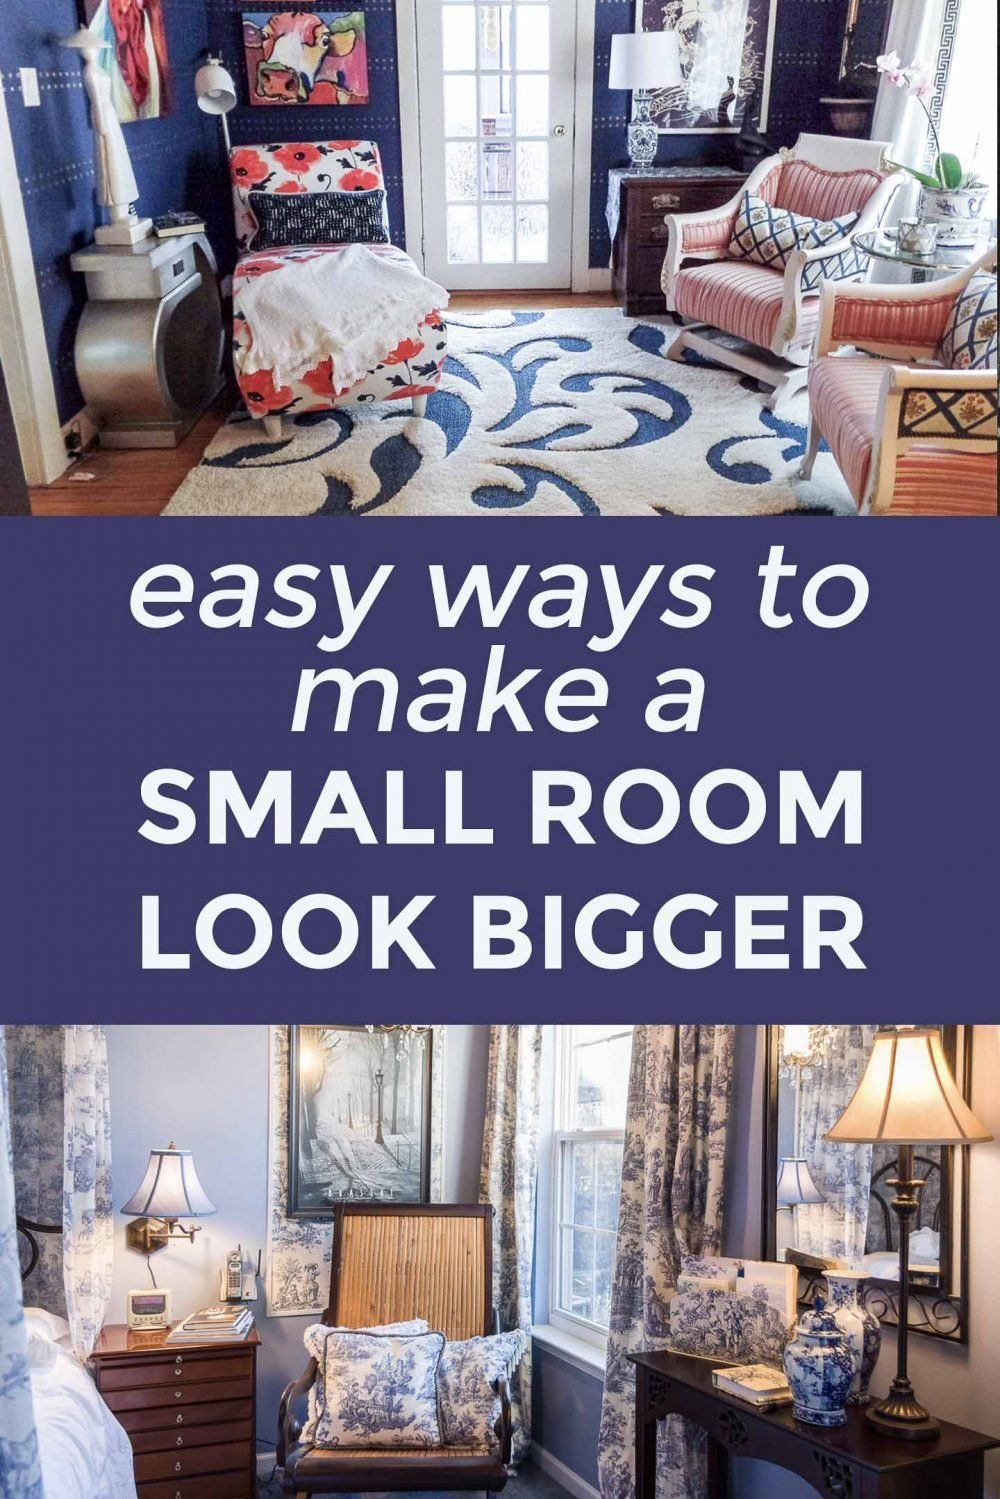 Small Space Decorating Ideas How To Make A Small Room Look Bigger In 2020 Small Rooms Rustic Home Interiors Decorating Small Spaces